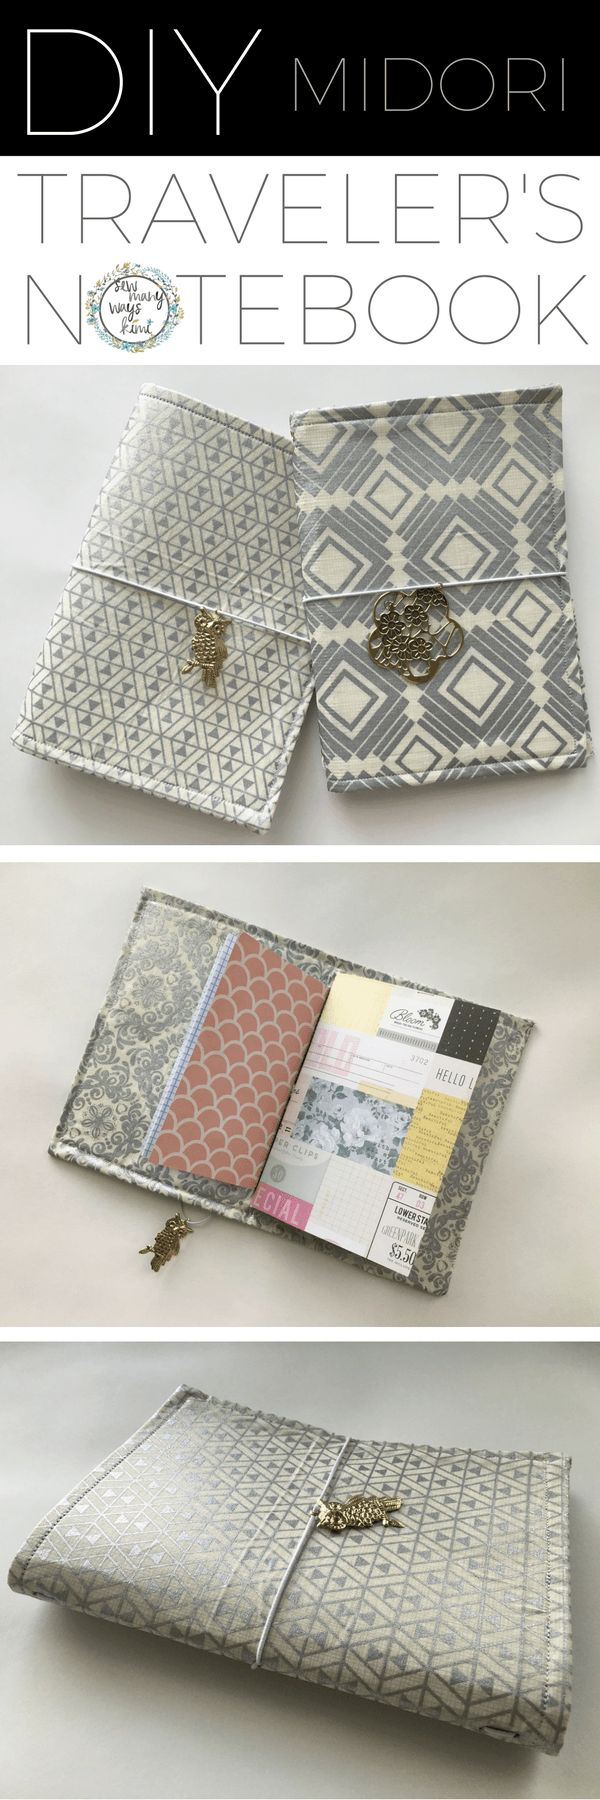 DIY Midori Travelers Notebook & Notebook Inserts. Video Included! Perfect for gifts!